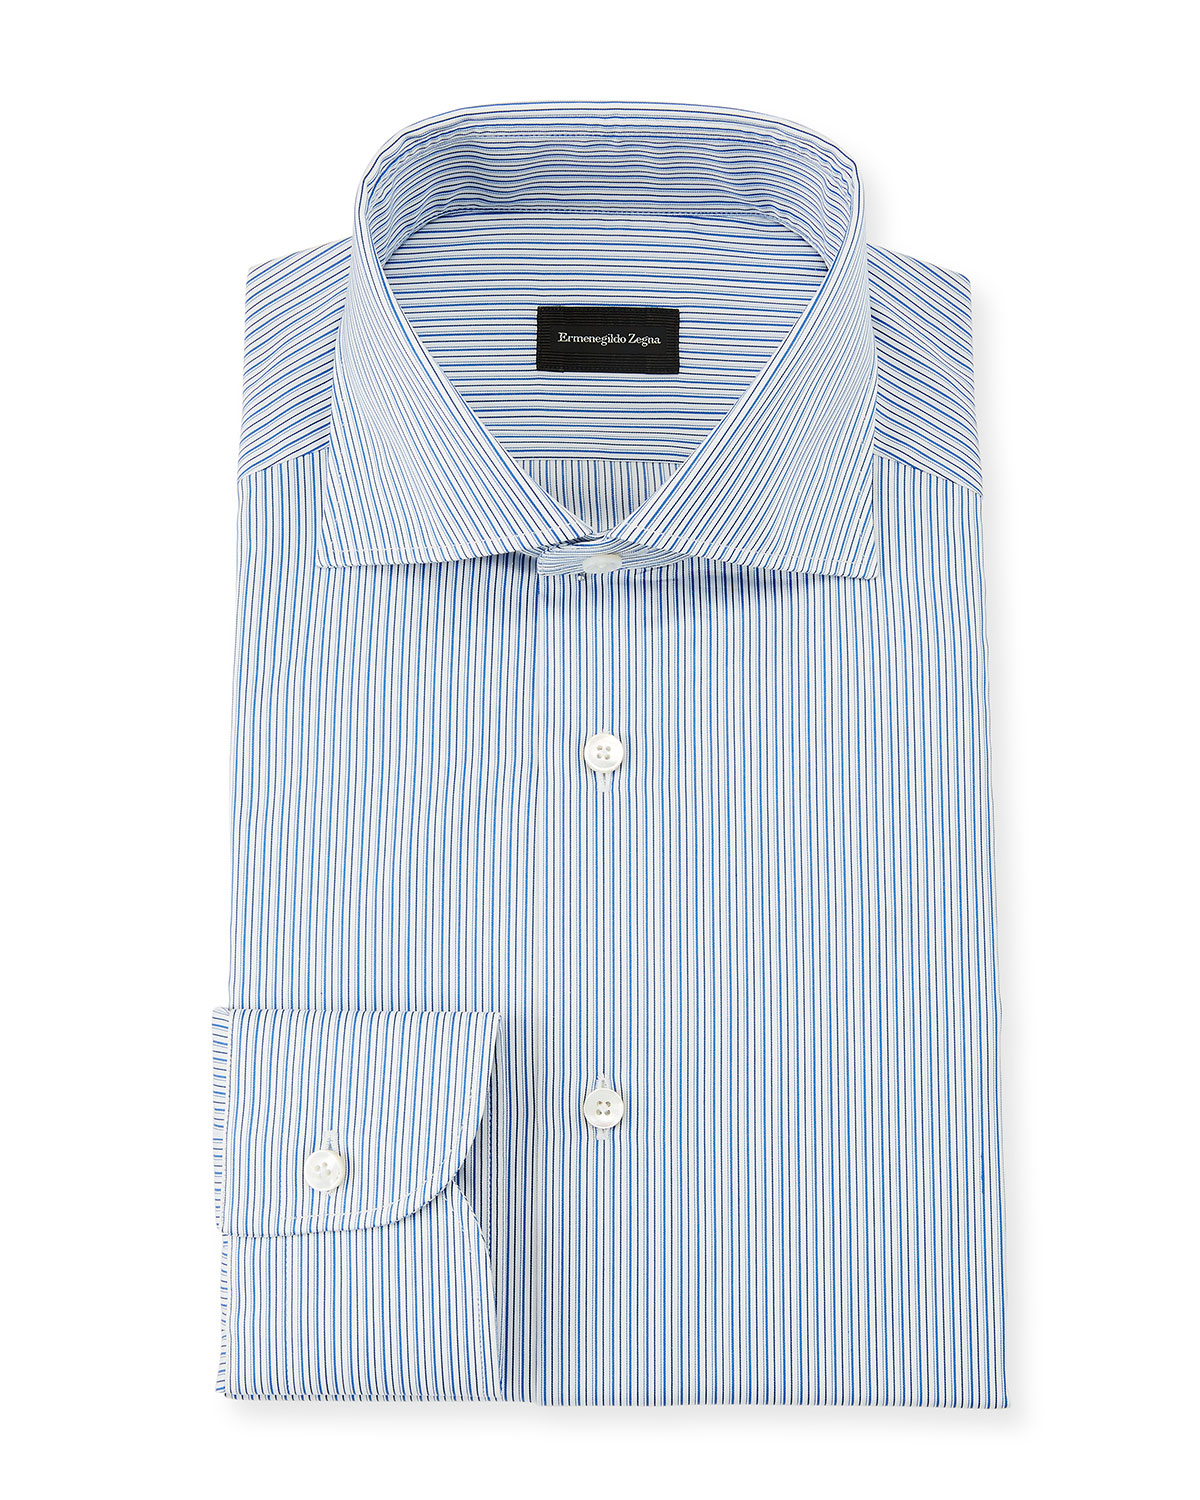 Men's Multi-Stripe Cotton Dress Shirt, Royal Blue